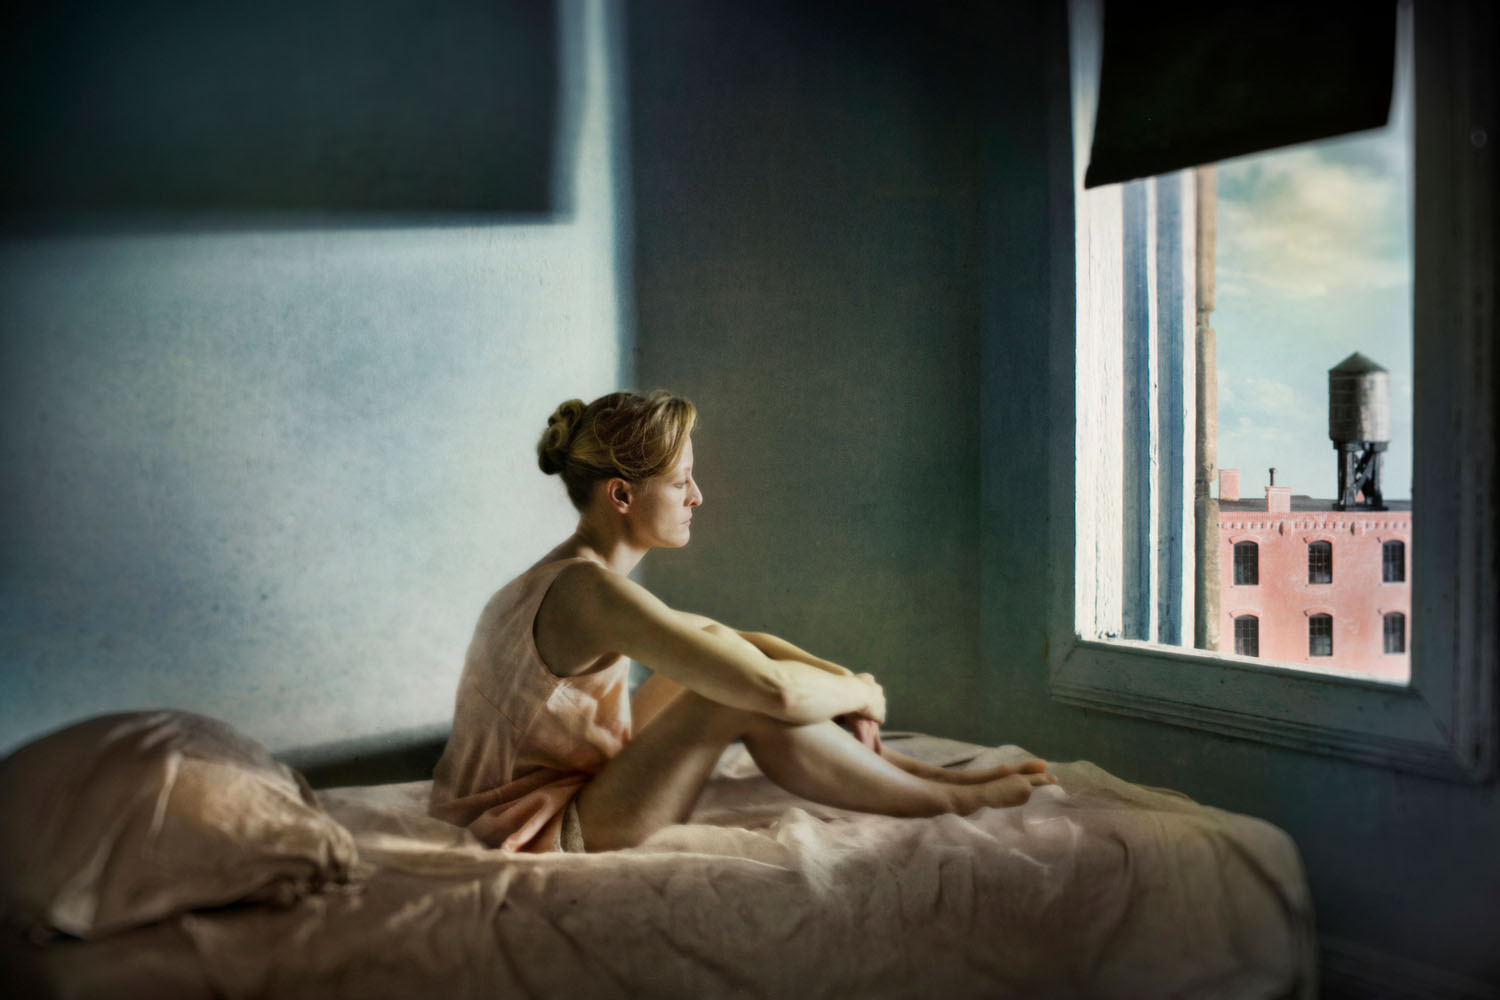 A photograph from the Hopper Meditations series by Richard Tuschman.